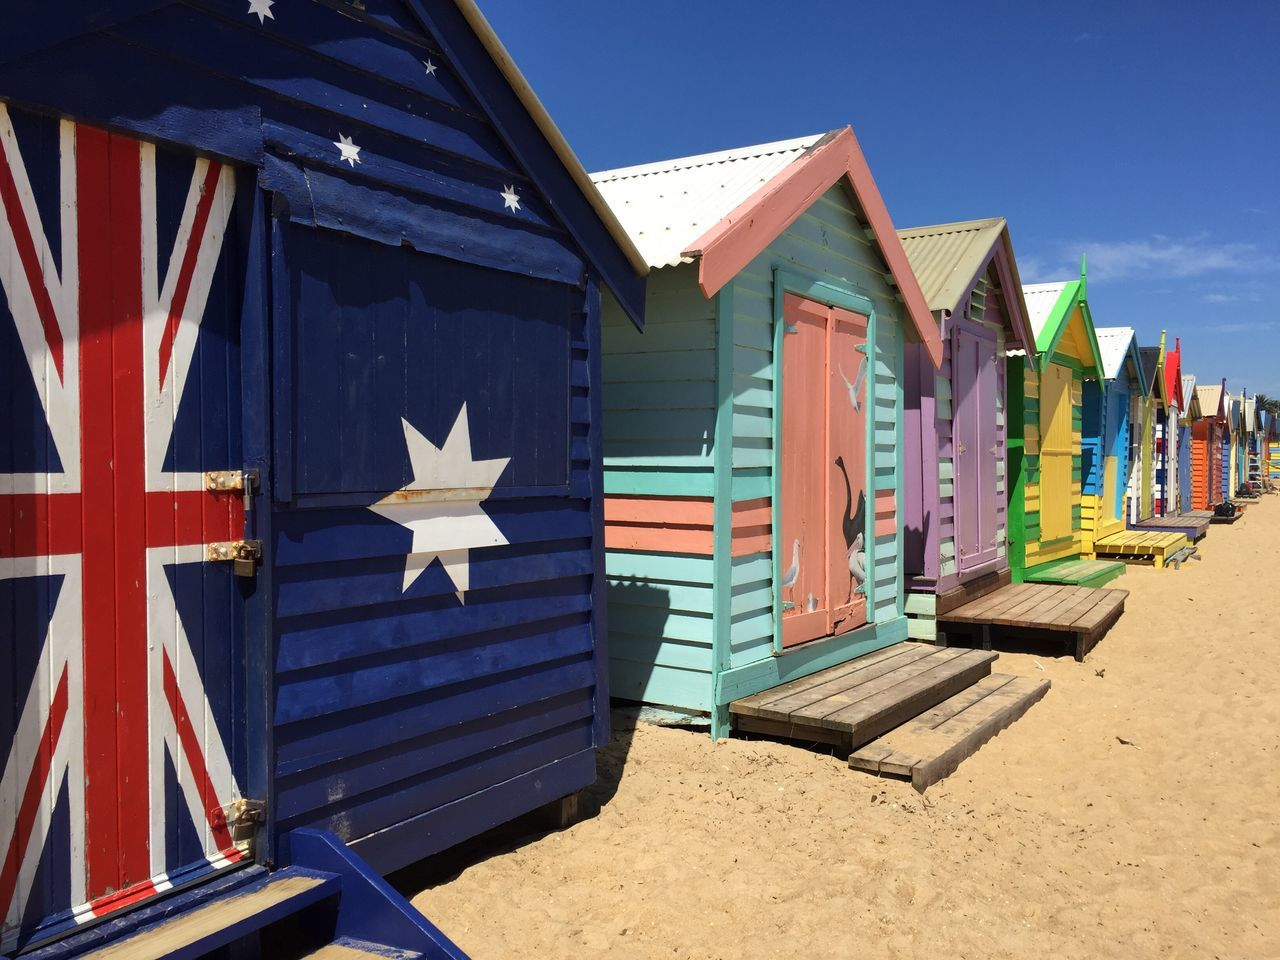 A day on the beach in Australia Architecture Building Exterior Flag Sunlight No People Sand Beach Day Outdoors Patriotism Sky Beach Hut EyeEmNewHere Check This Out Travel Destinations